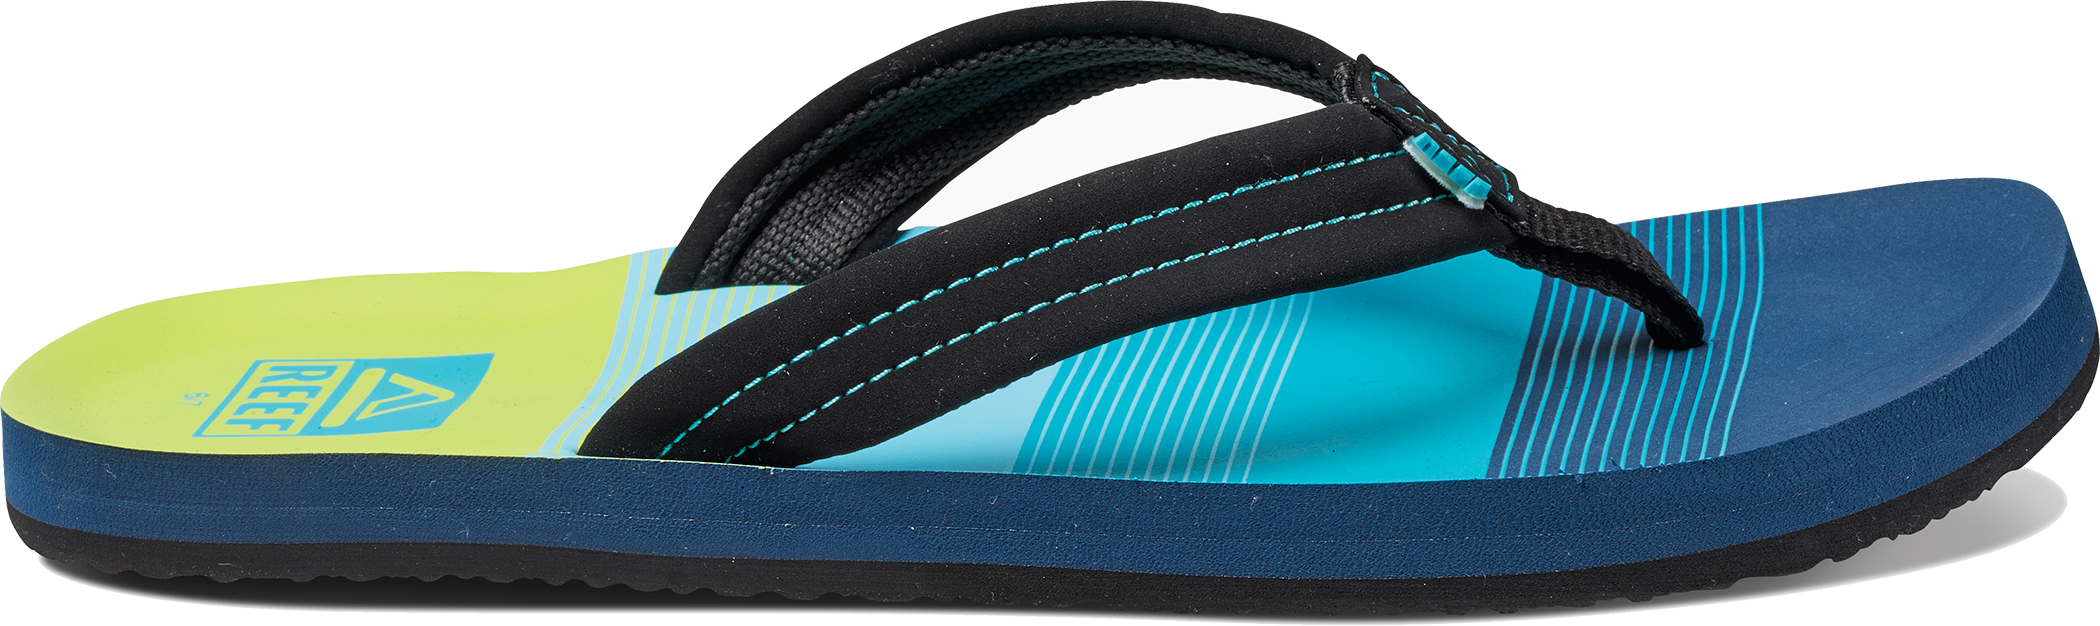 e966535f4ba1 Reef Ahi Kids Summer Beach Flip Flops With Canvas Straps Ukyouth 1 2 Aqua  green. About this product. Picture 1 of 5  Picture 2 of 5  Picture 3 of 5  ...